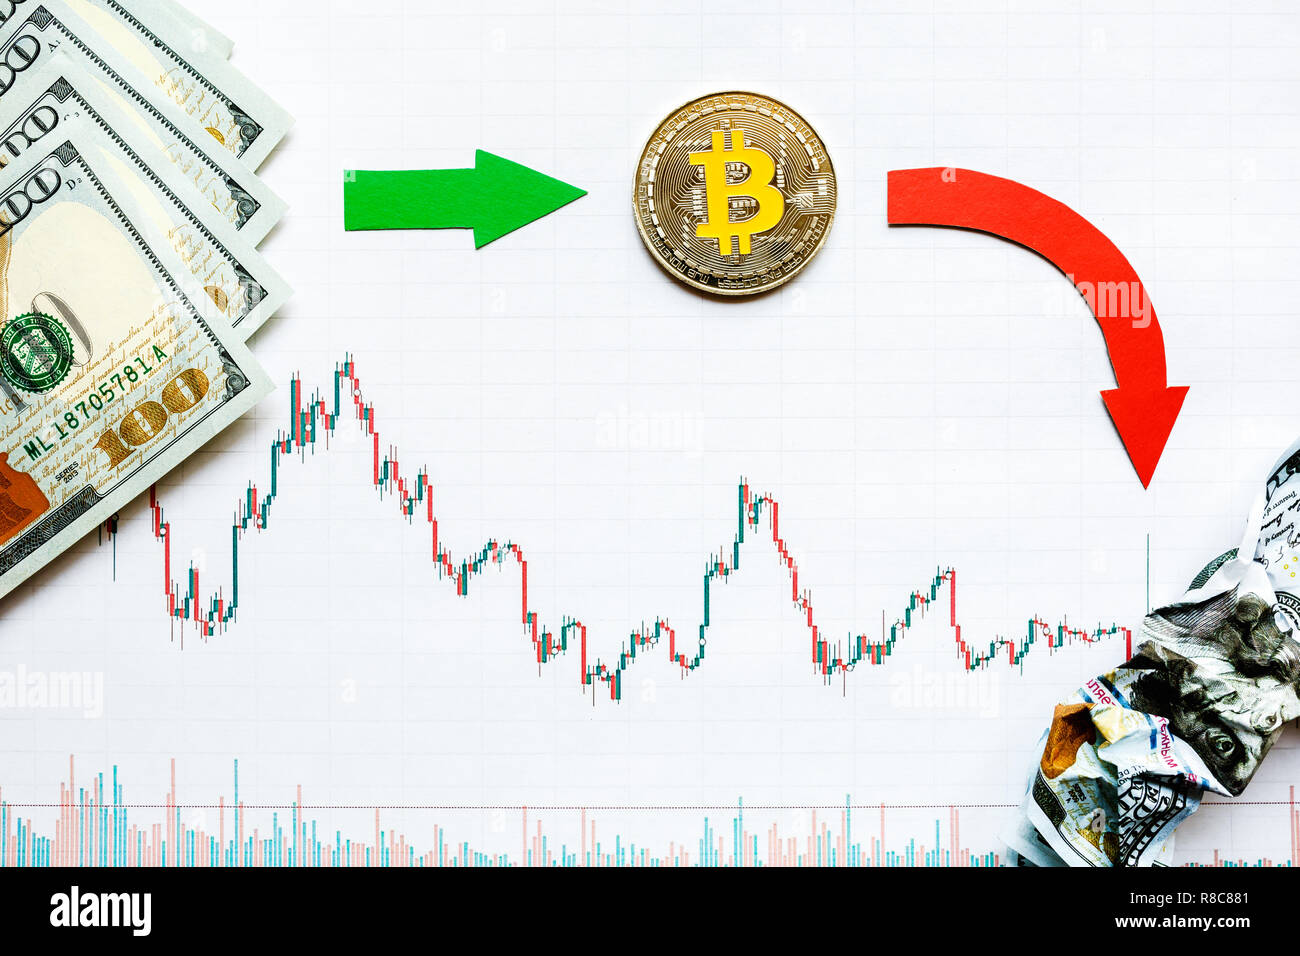 unprofitable investment of depreciation of virtual money bitcoin. Green red arrow, silver bitcoin and dollars go down on forex paper. Money turned to  - Stock Image